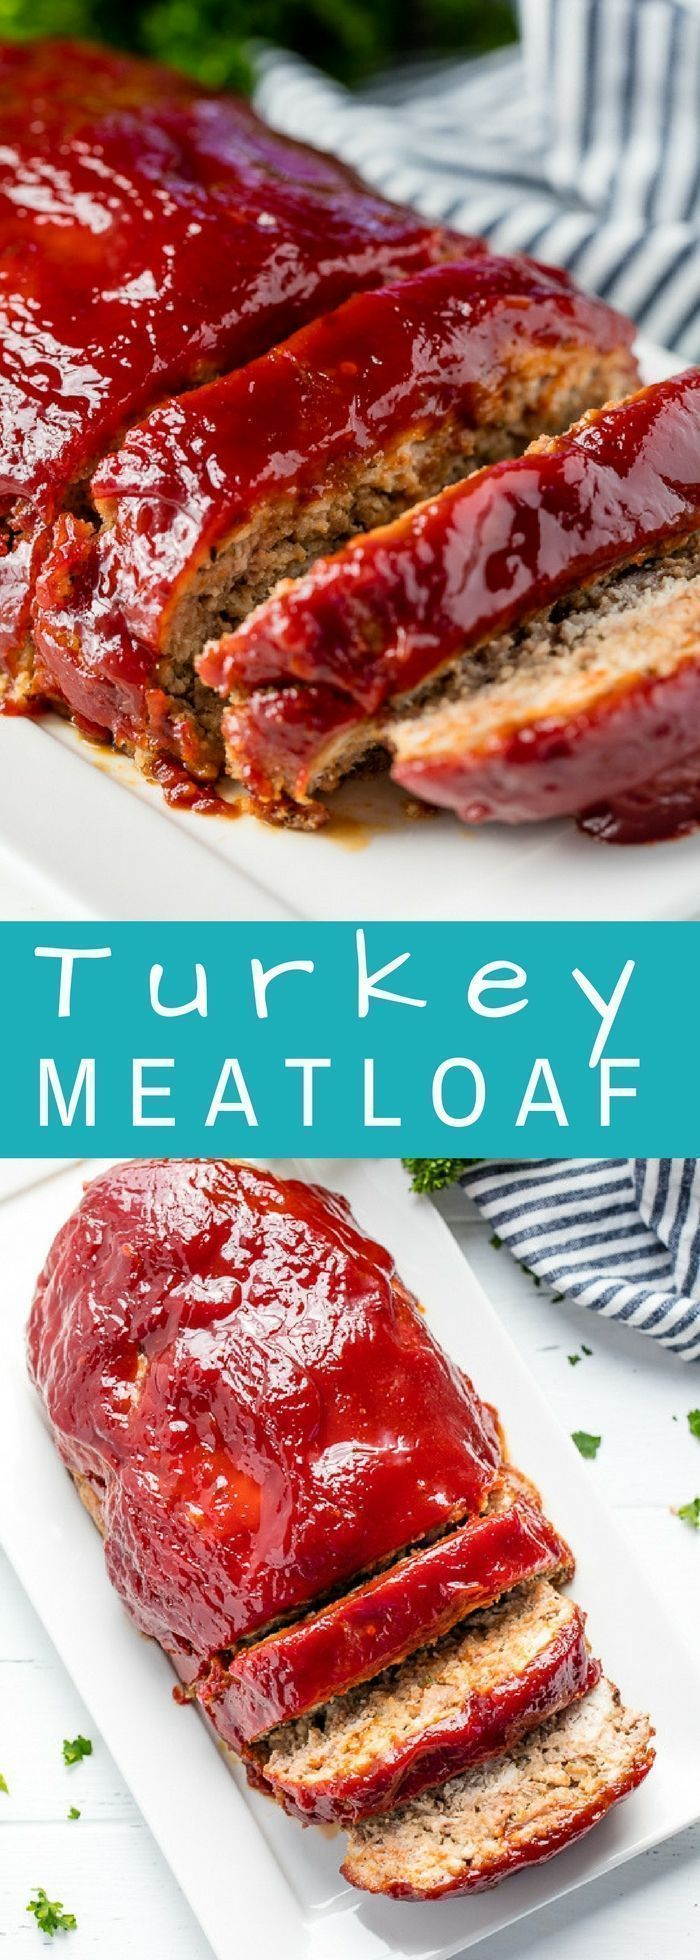 This Turkey Meatloaf recipe doesn't sacrifice any flavor. It's easy to make and is topped off with the most delicious glaze! Your family will love this heart healthy version of a classic American dinner. http://eatdojo.com/easy-healthy-meatloaf-recipes-be